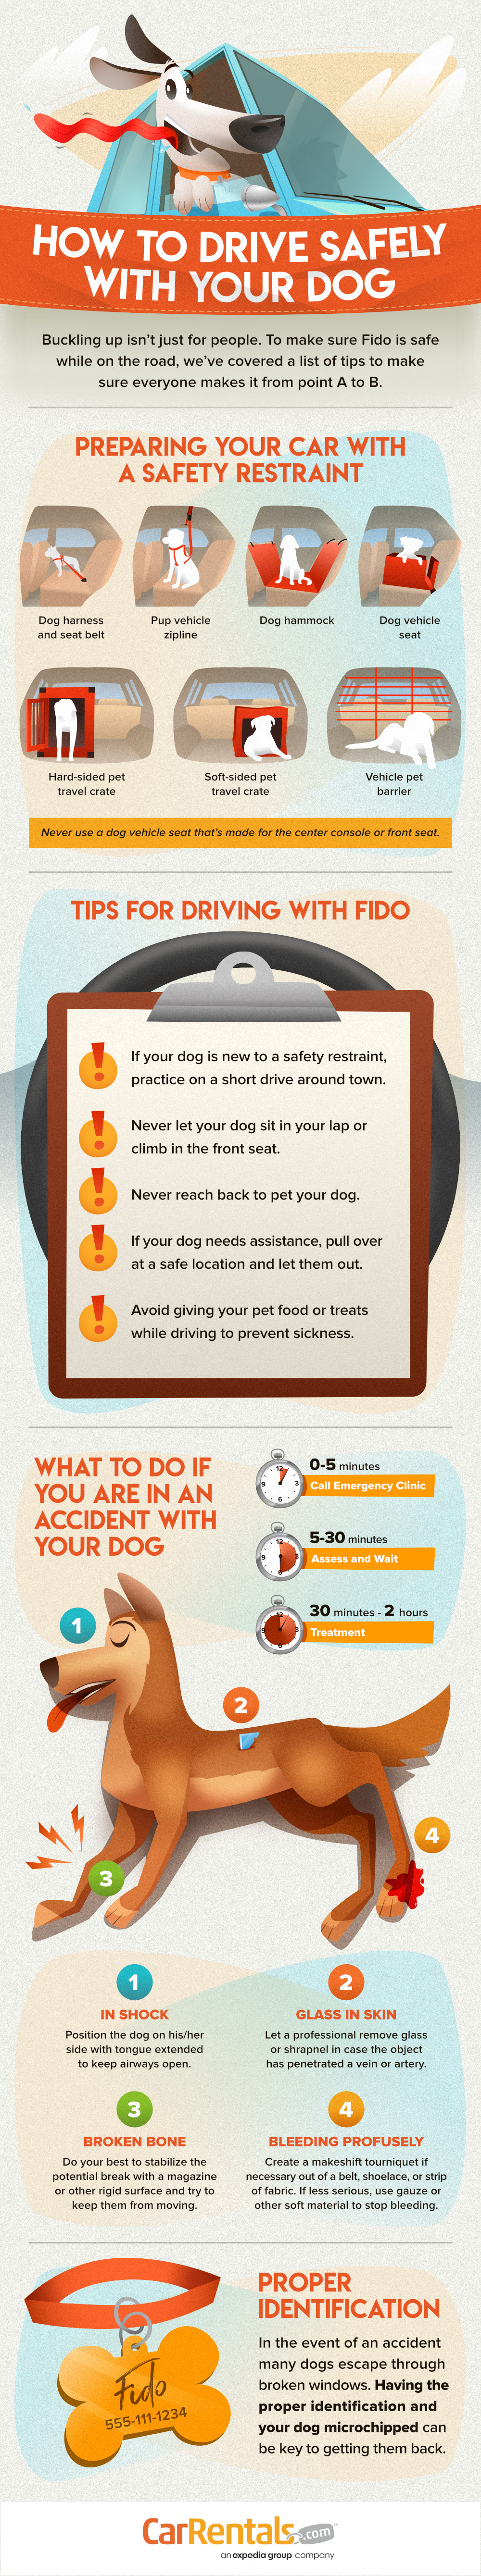 How to drive safely with dogs